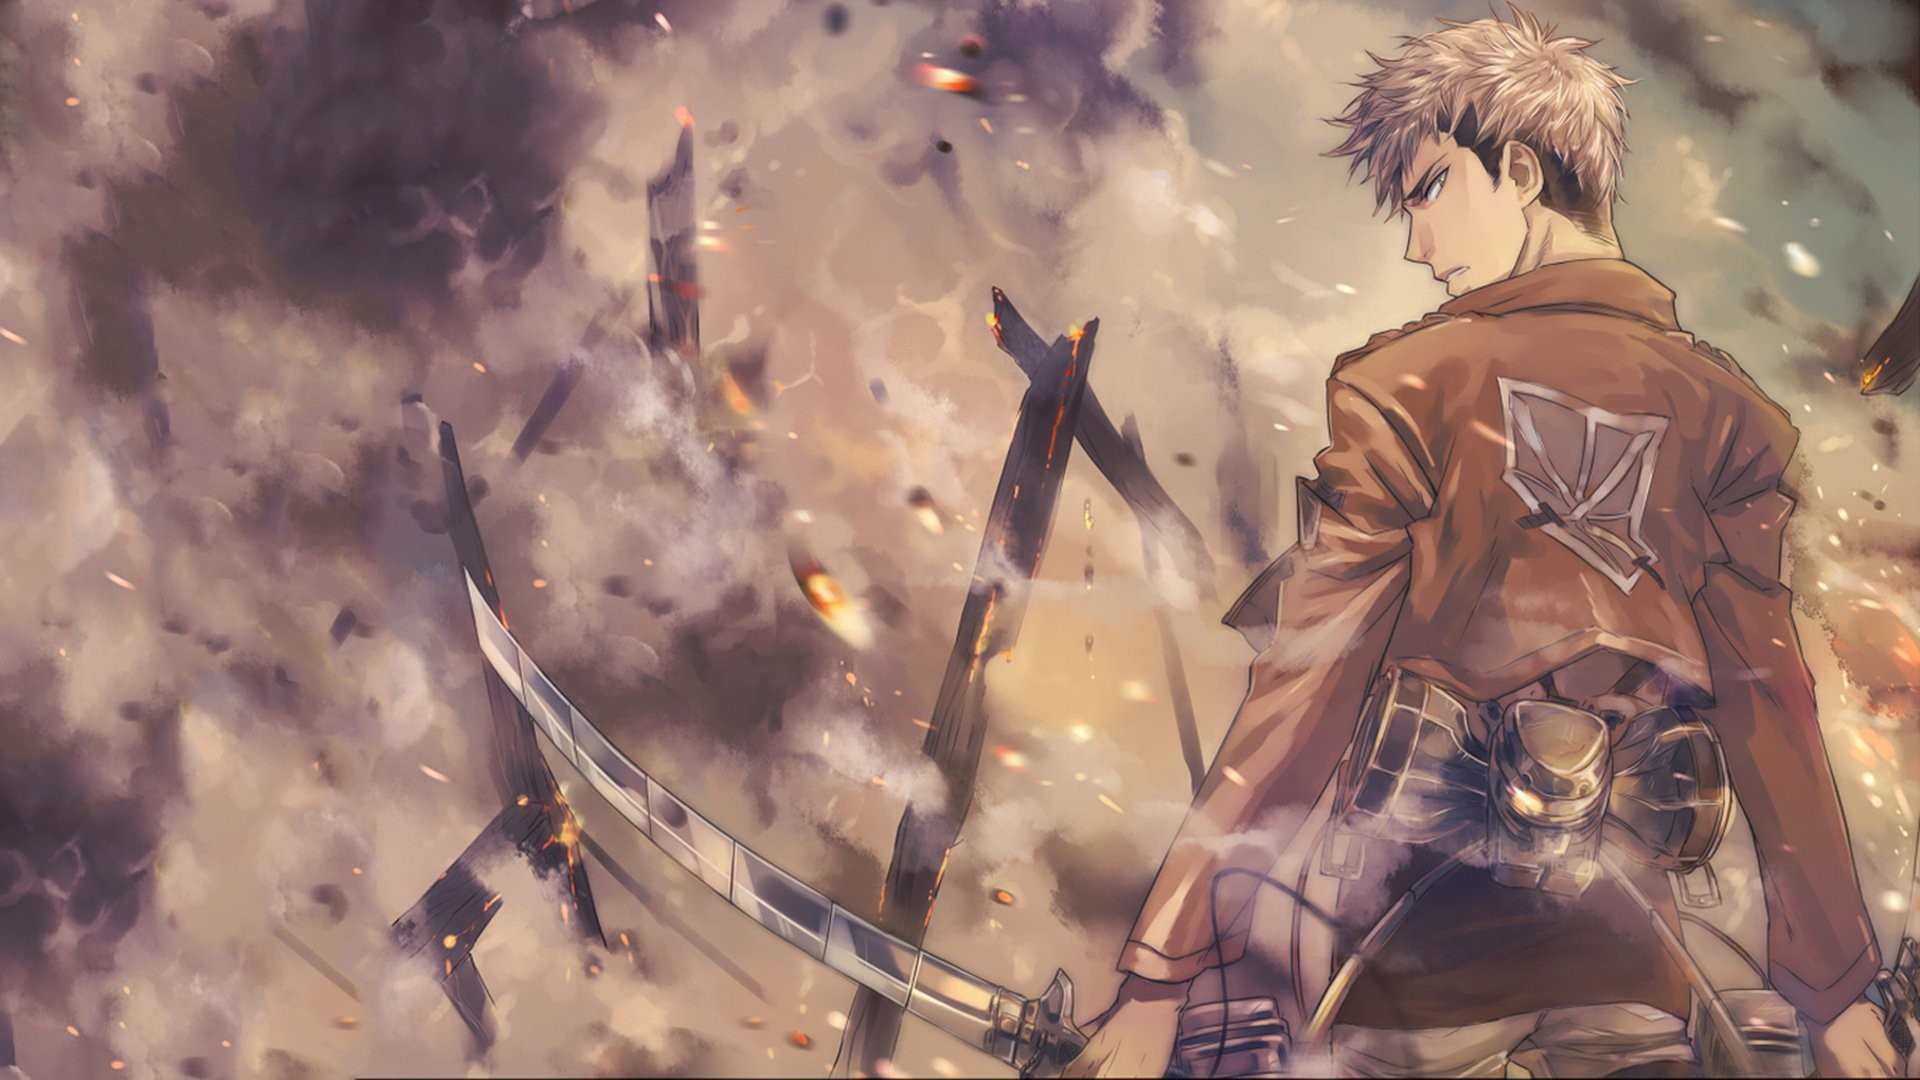 attack on titan wallpaper 183�� download free beautiful high